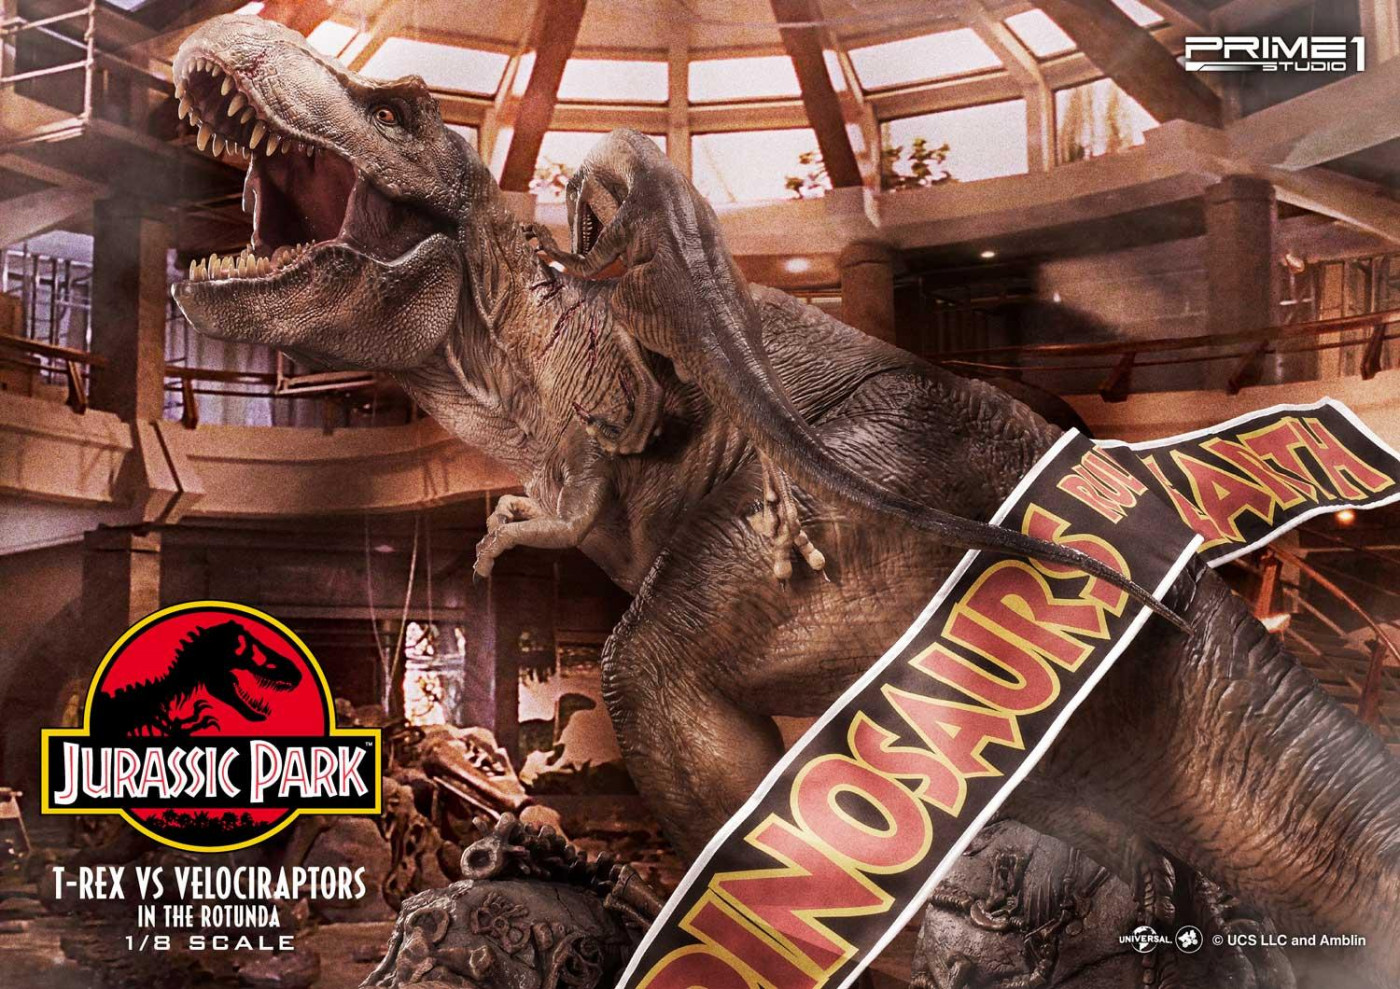 Legacy Museum Collection Jurassic Park (Film) T-REX VS Velociraptors in the Rotunda 1/8 scale Bonus Version